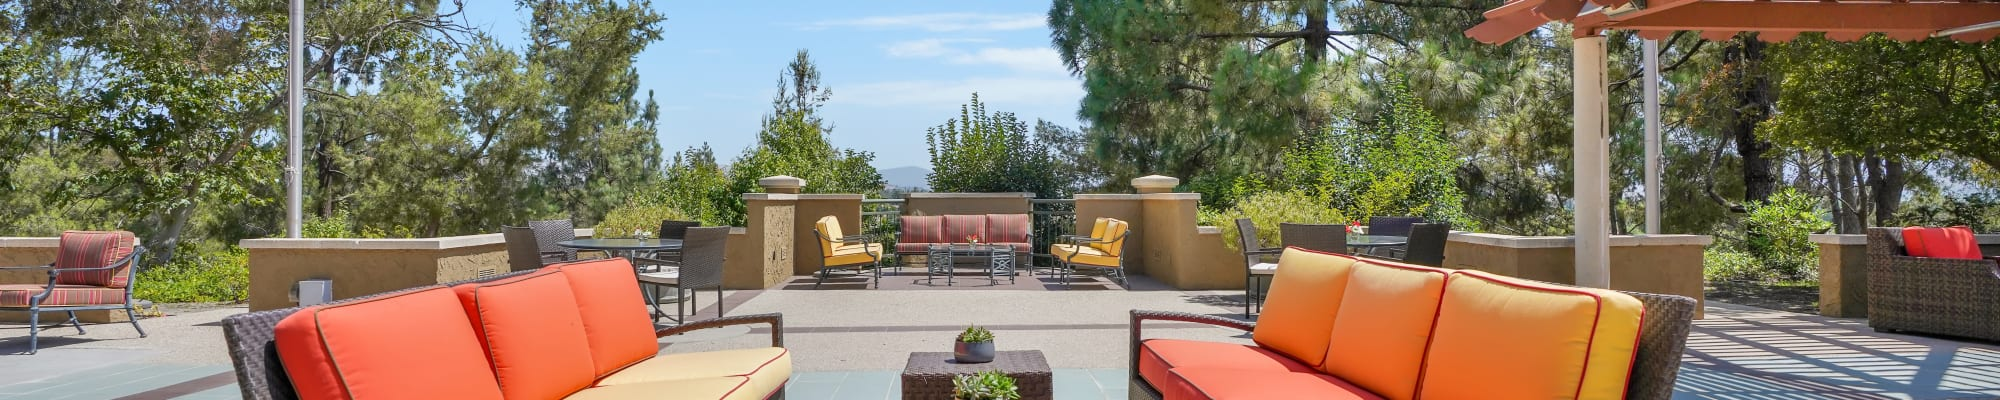 Our community at The Reserve at Thousand Oaks in Thousand Oaks, California